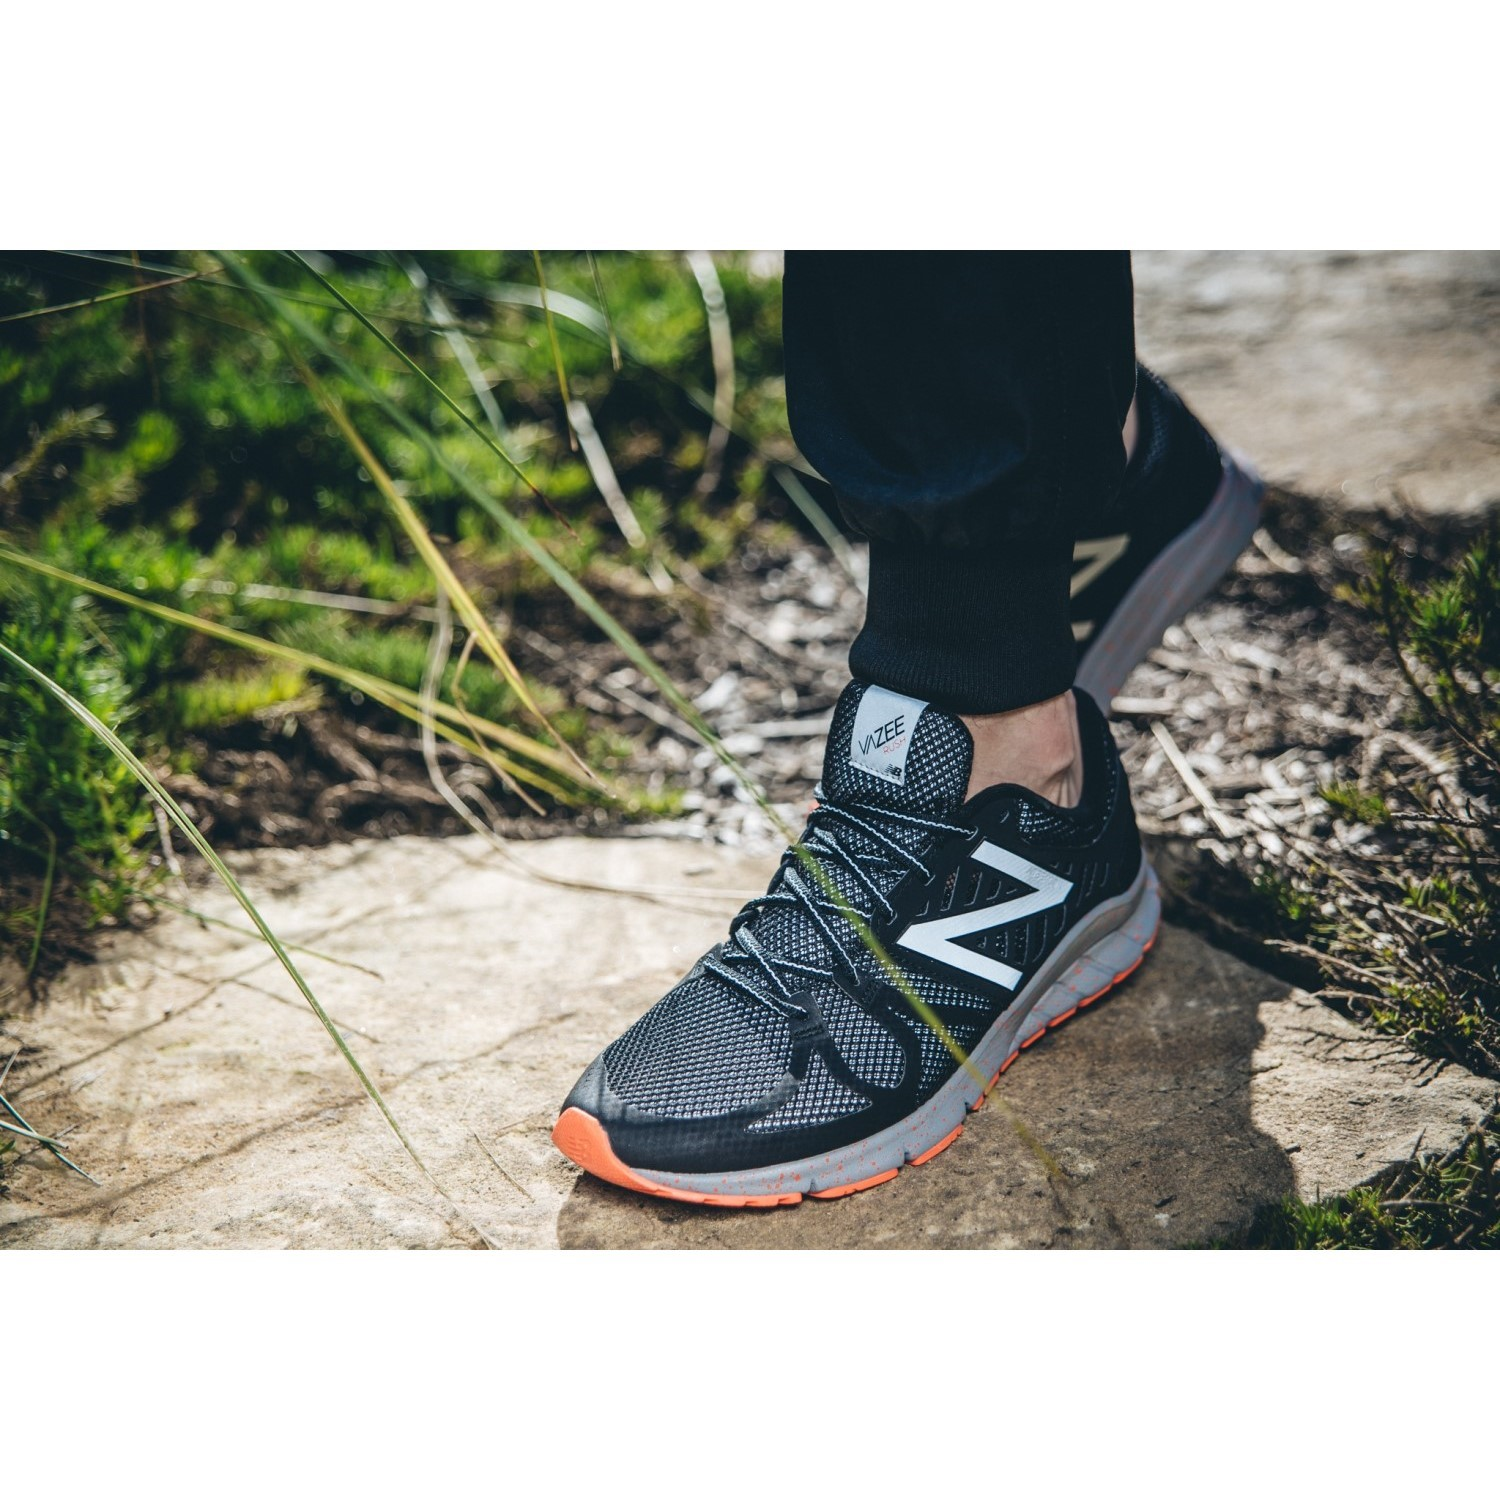 New balance vazee rush v2 mens running shoes black multi online - New Balance Vazee Rush Beacon Mens Running Shoes Black Flame